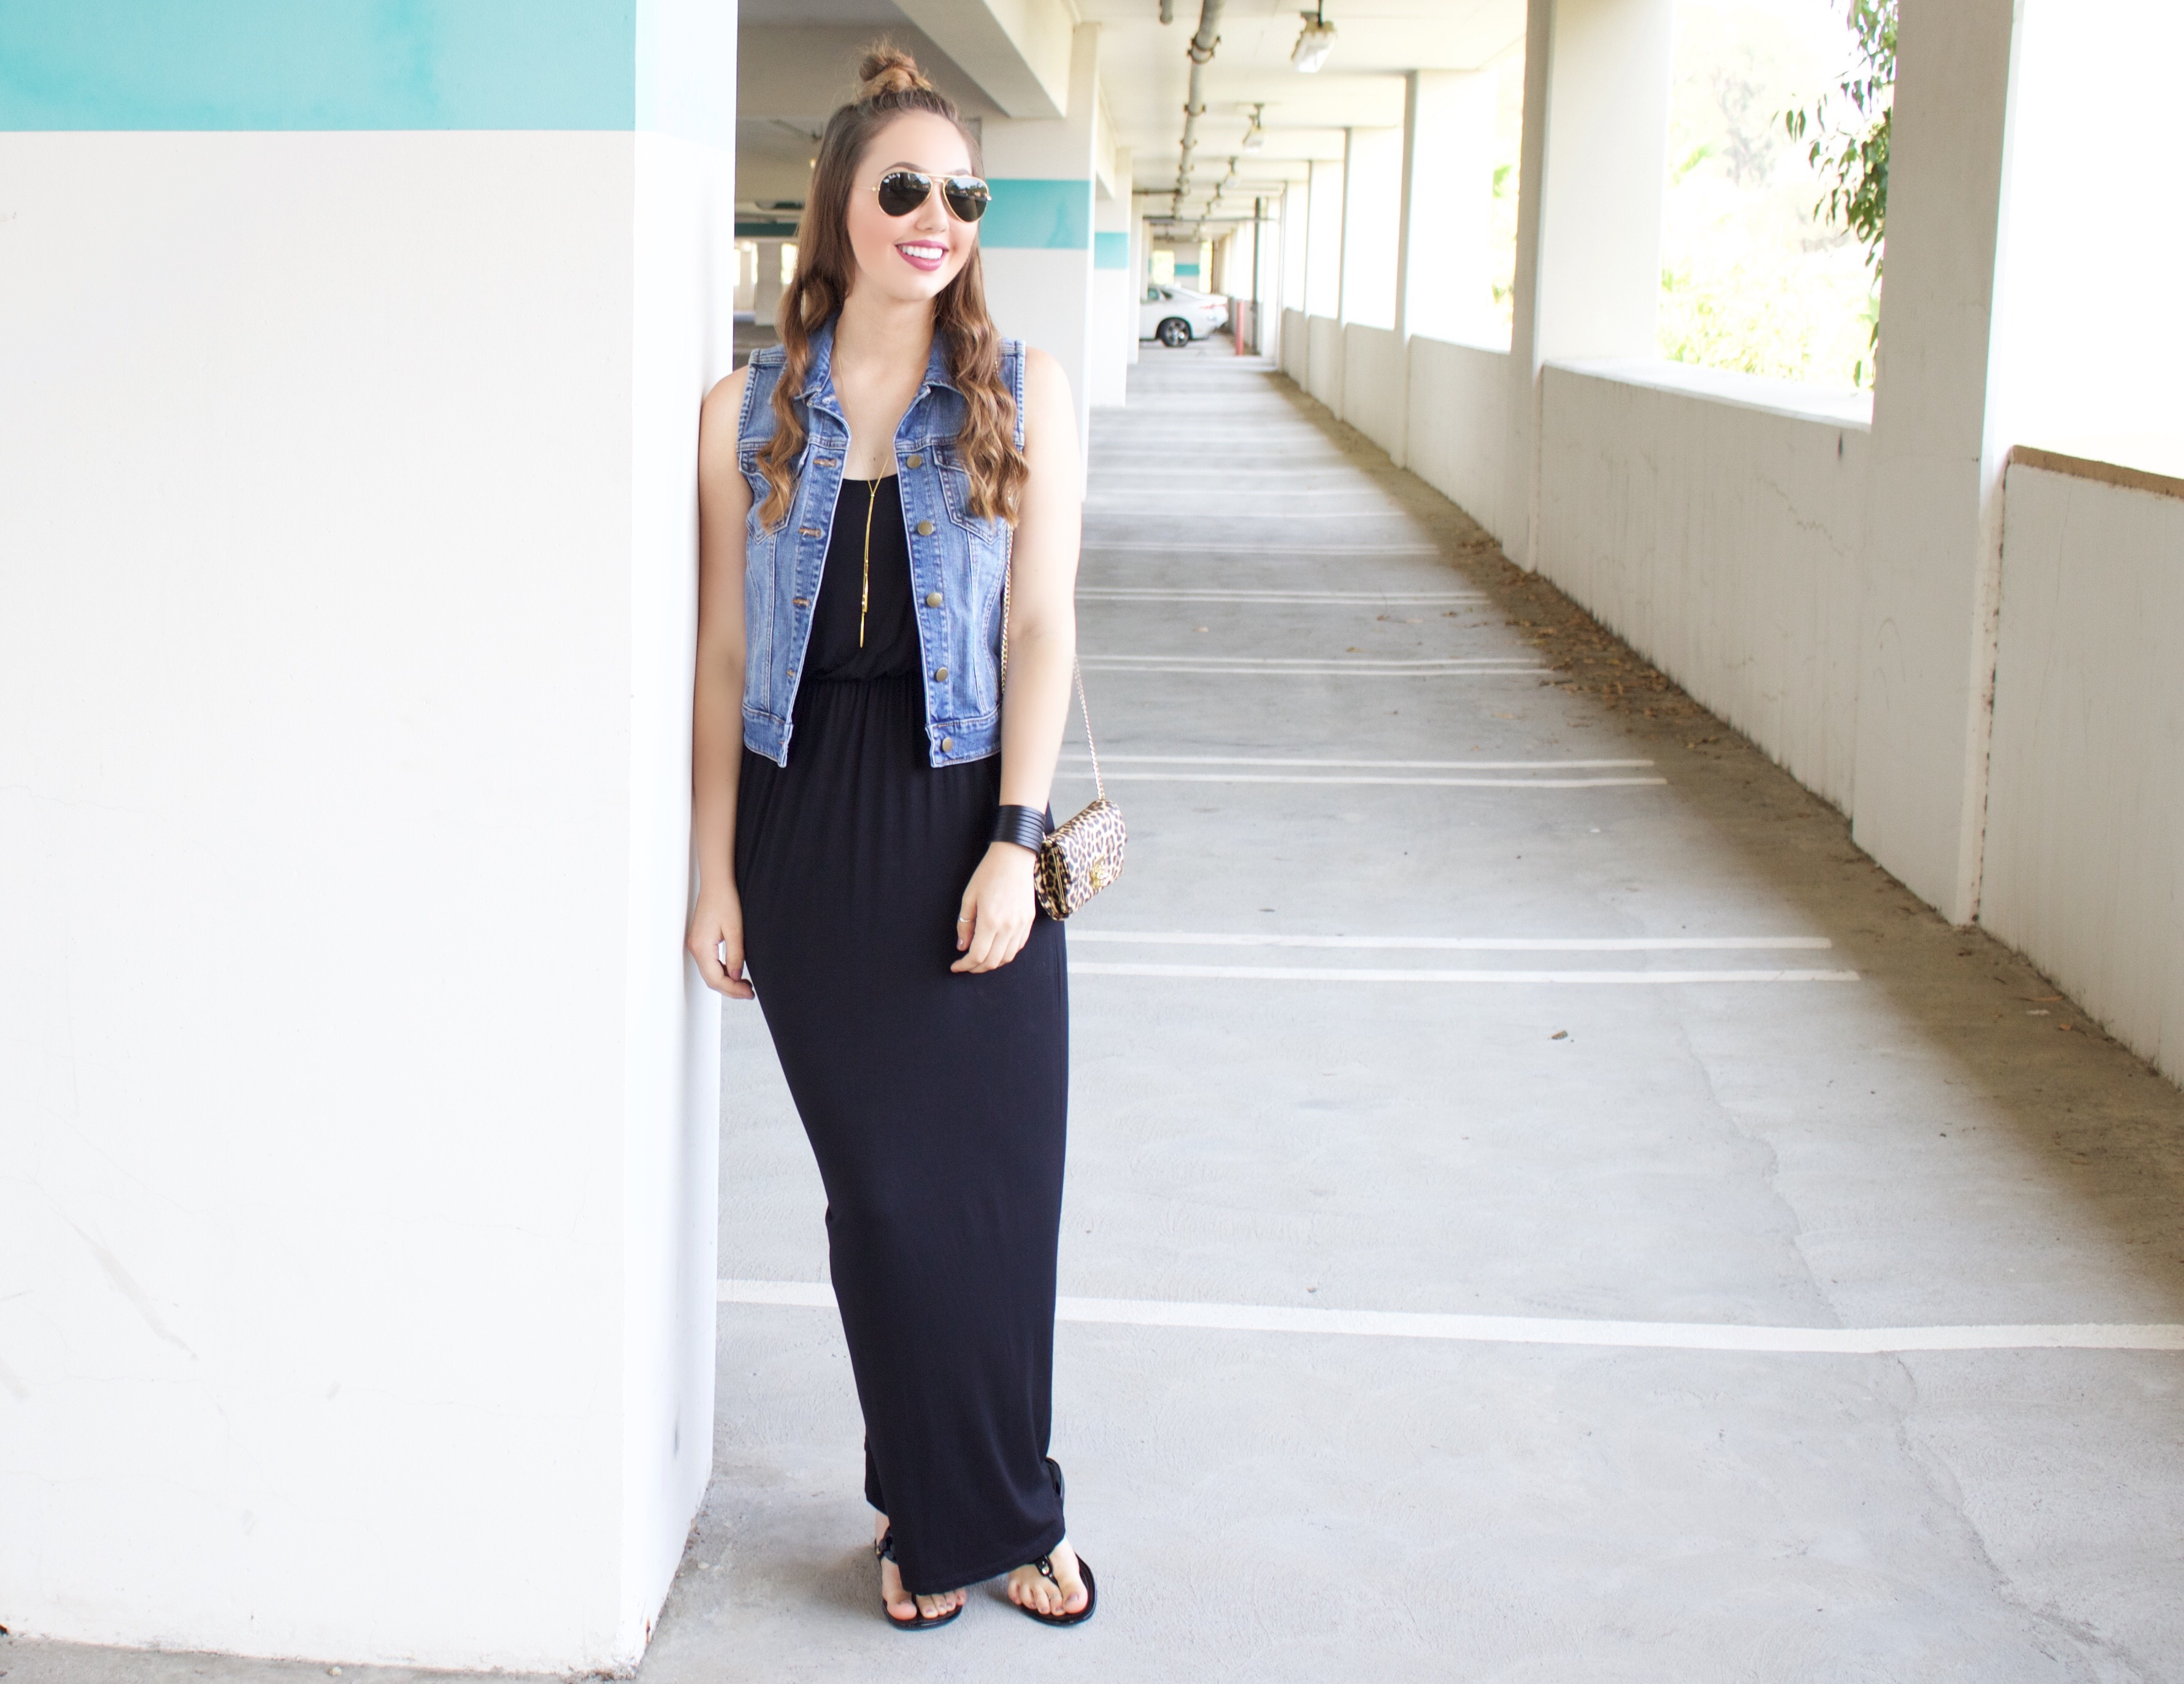 How to Style a Maxi Dress - My Styled LifeA